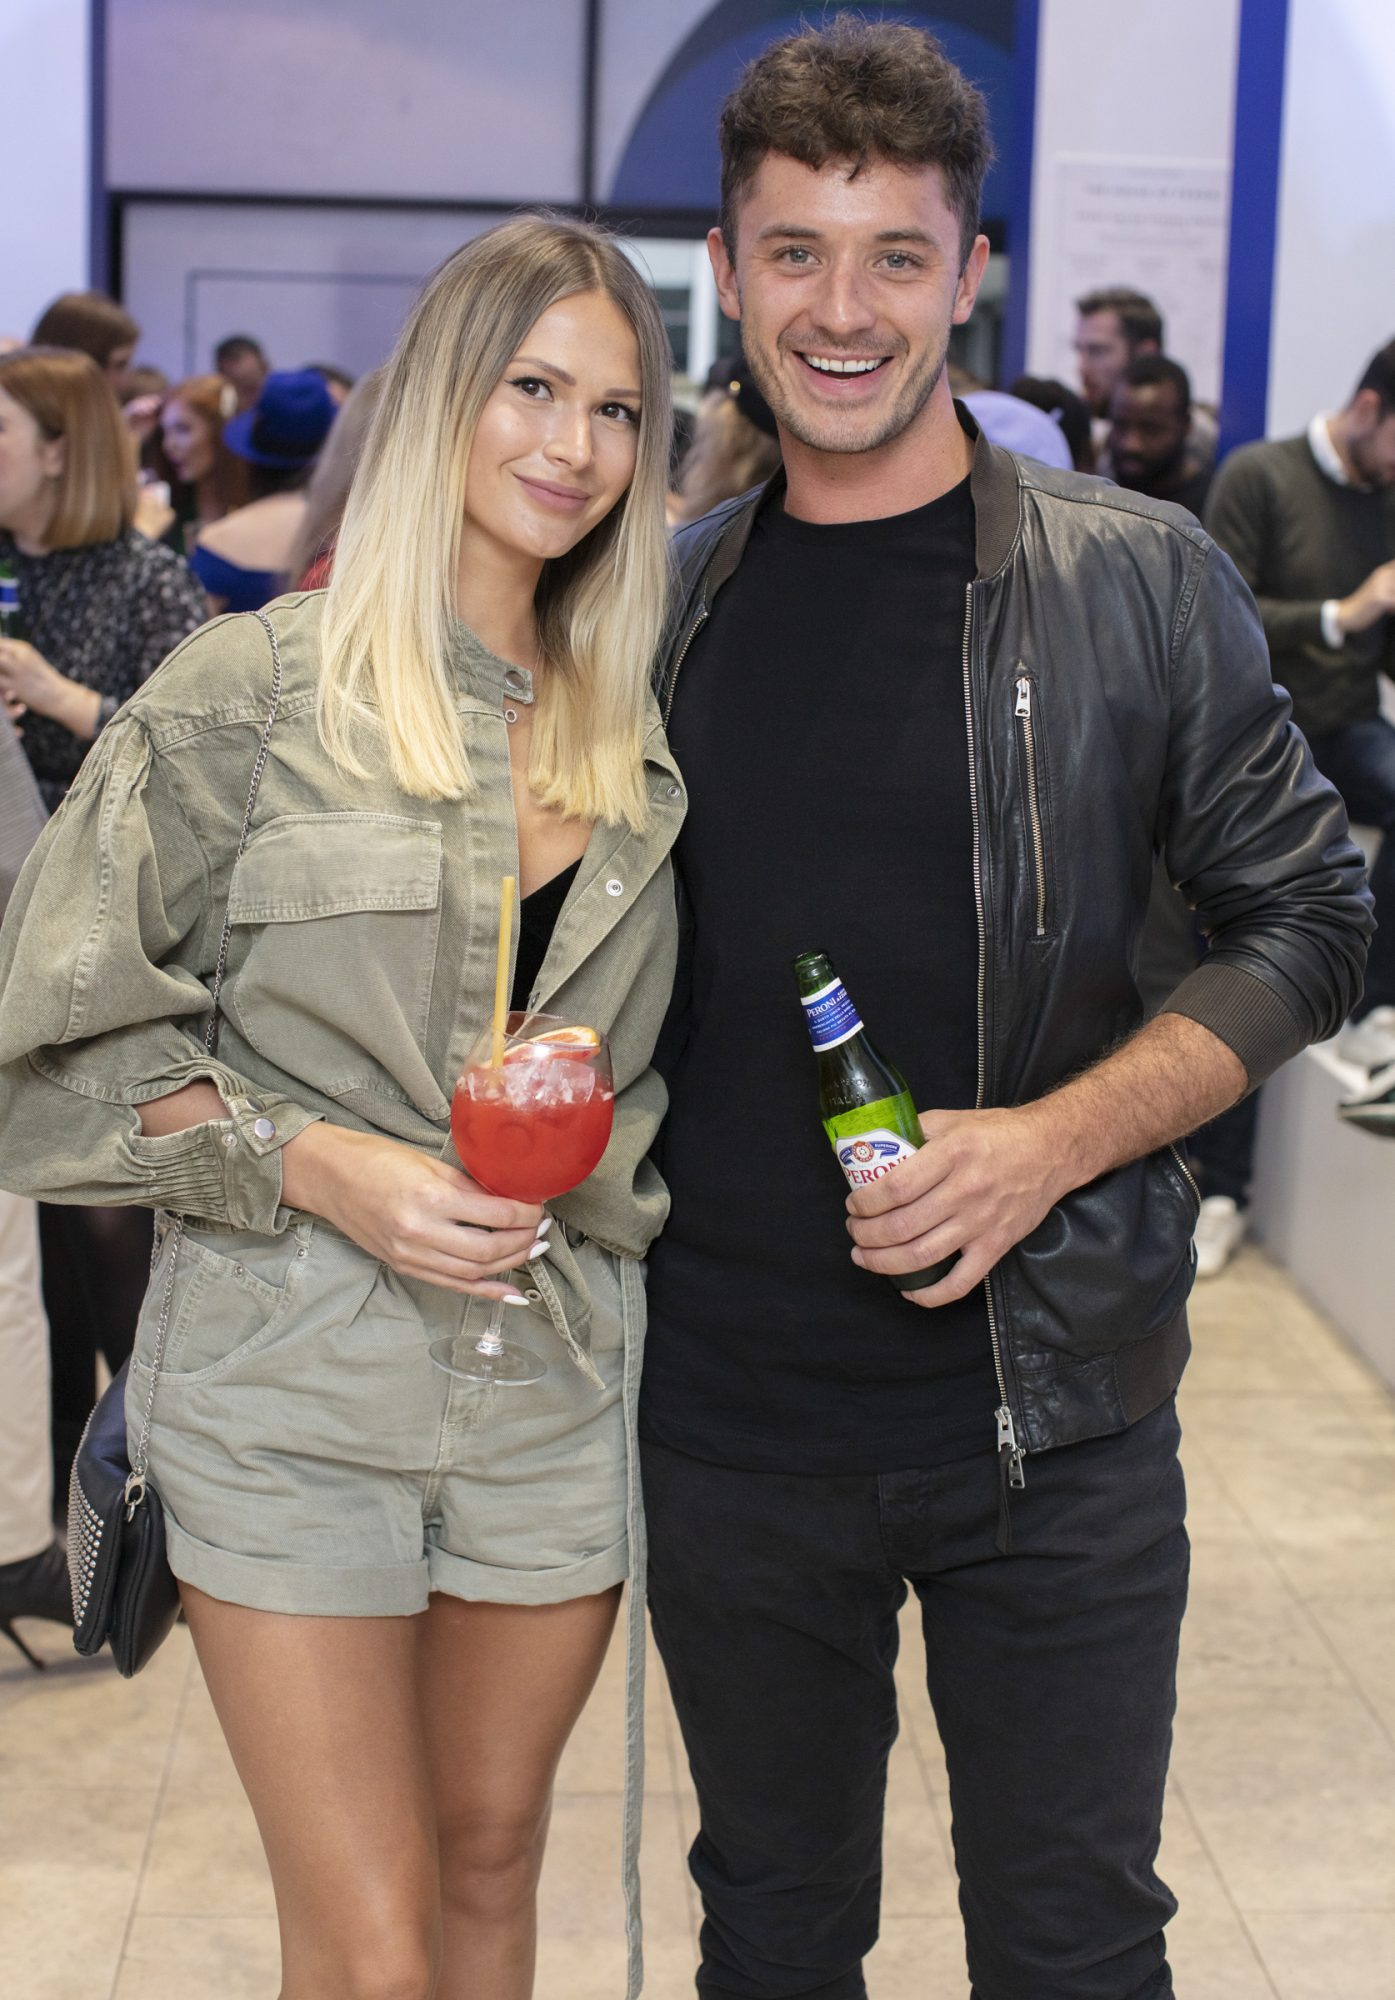 Phil Costello & Svetlana Jersova pictured at the launch of The House of Peroni, which is open at the RHA in Dublin until Sunday, 1st September 2019. This year's residency sees the RHA transformed into a stylish Peroni inspired experience, filled with food, drink and design. www.thehouseofperoni.com Photo: Anthony Woods.